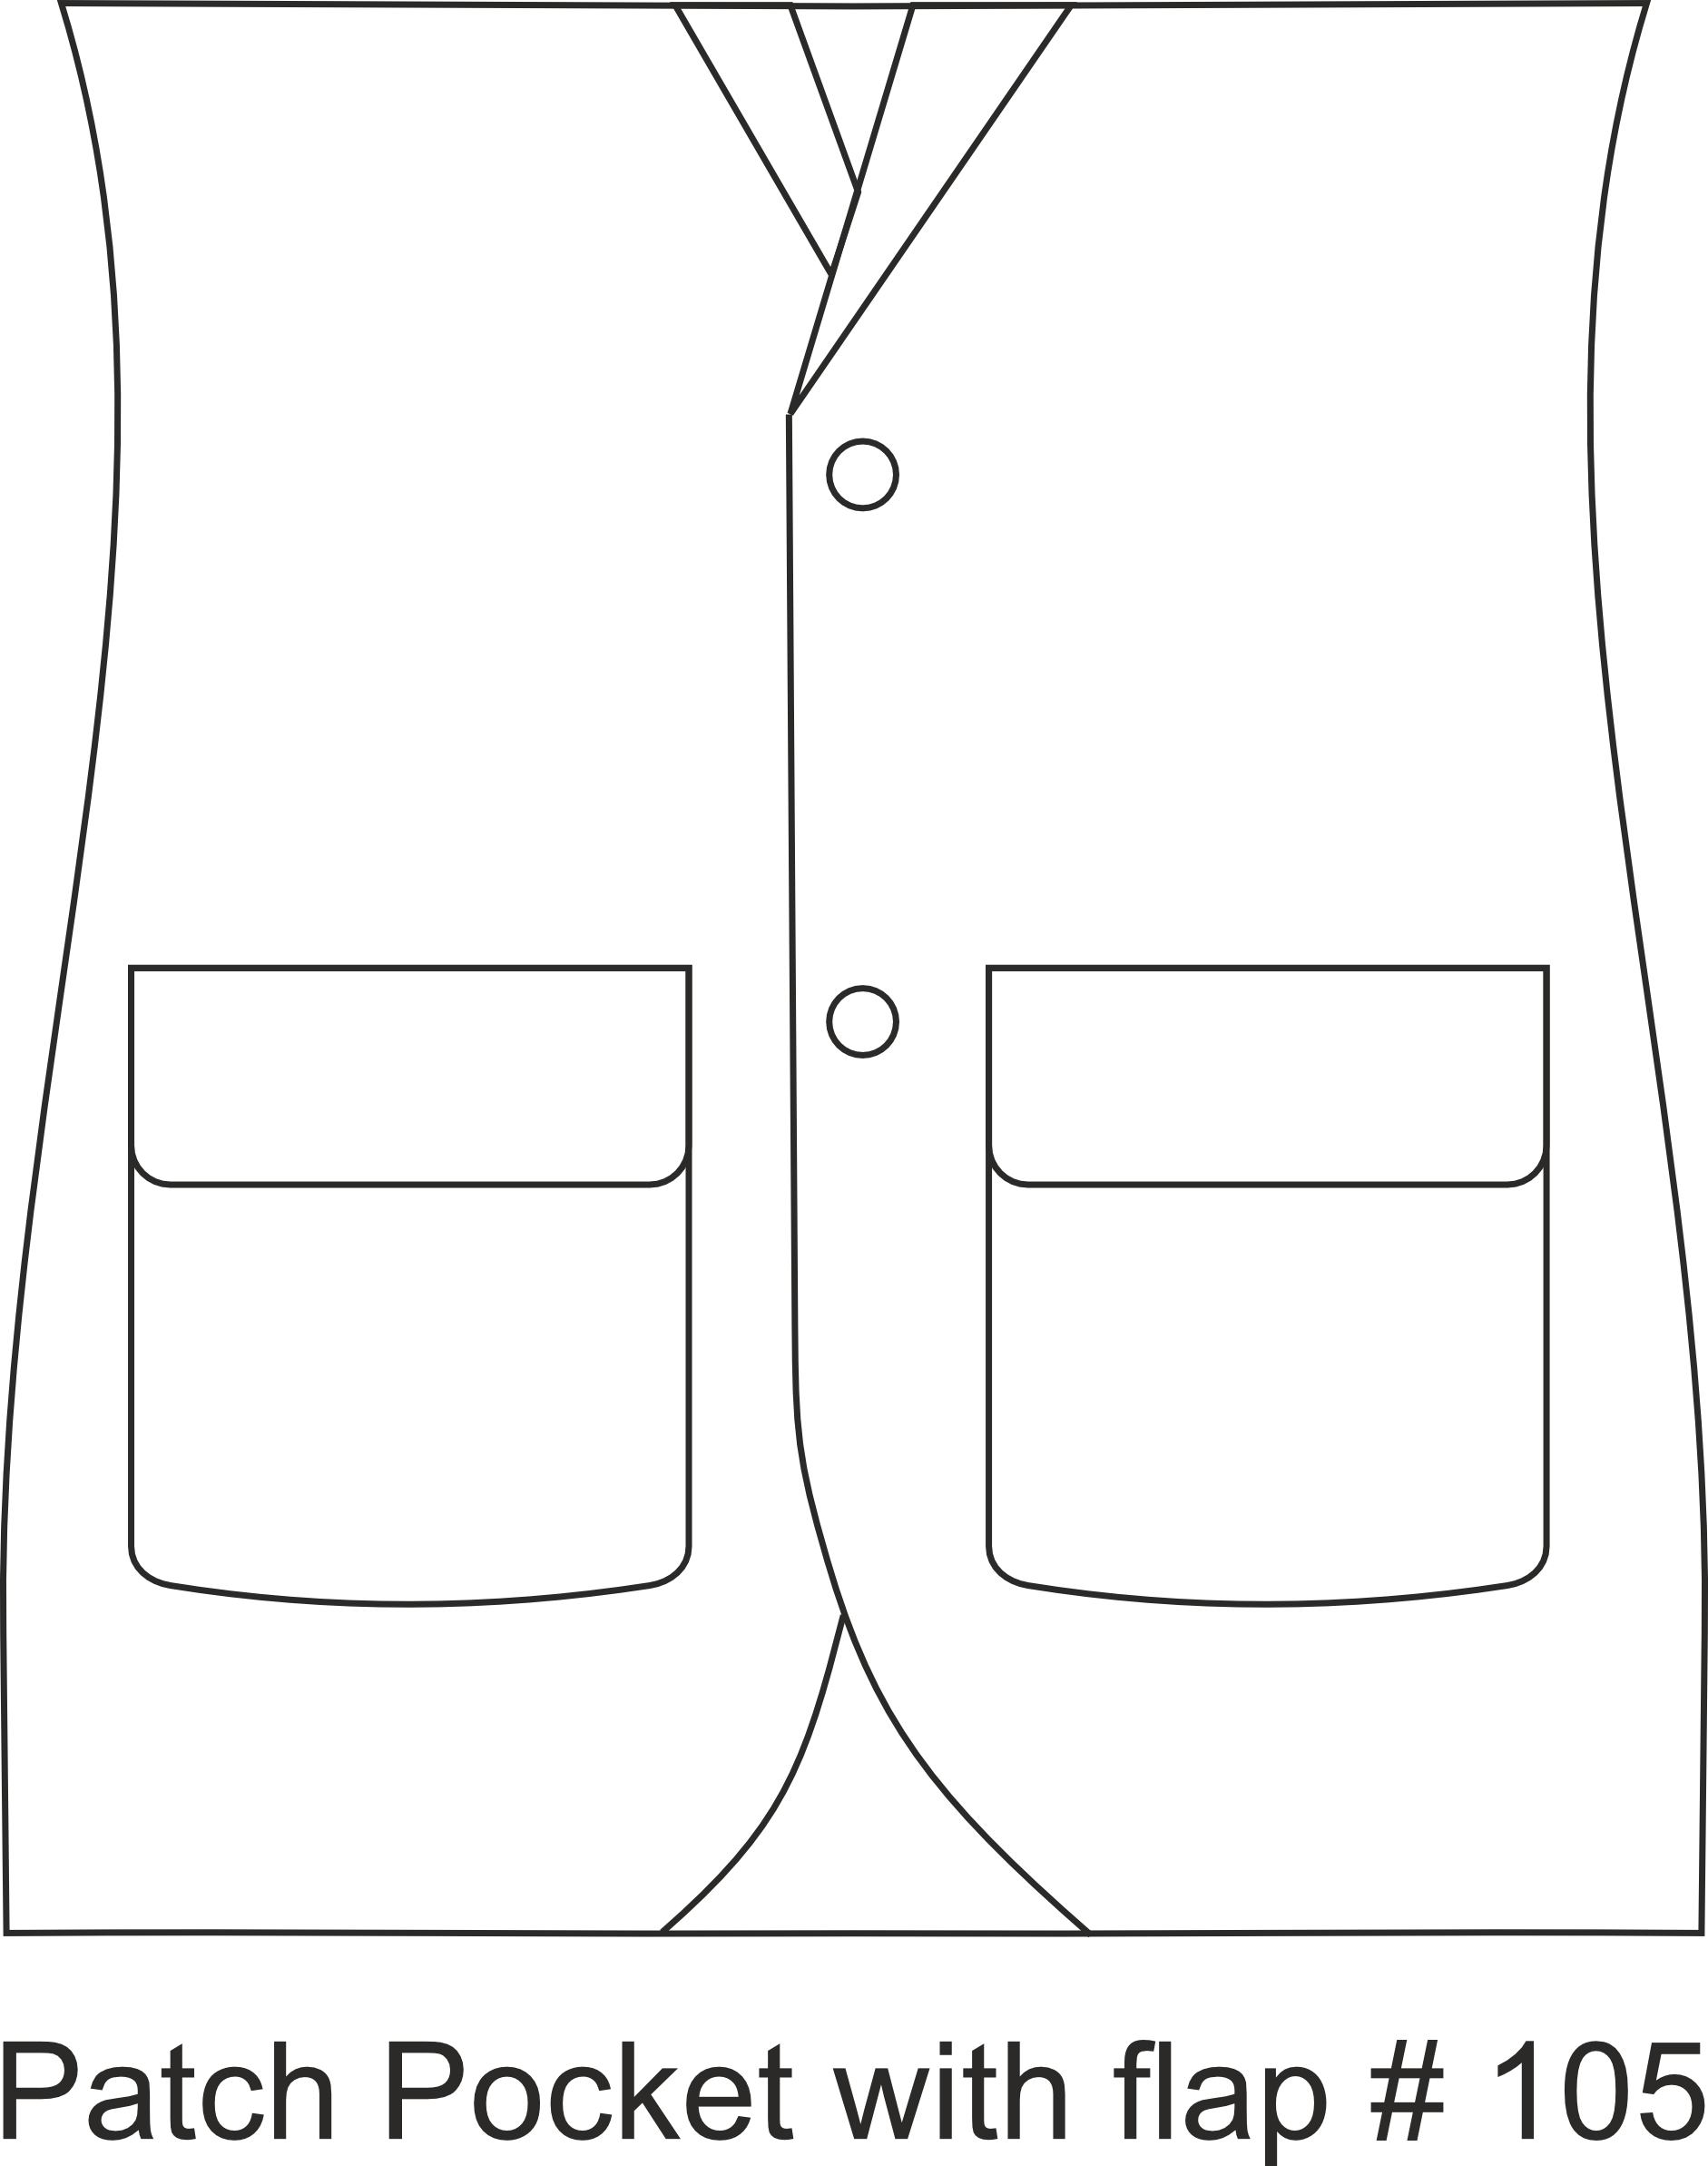 pocket-patch-with-flap